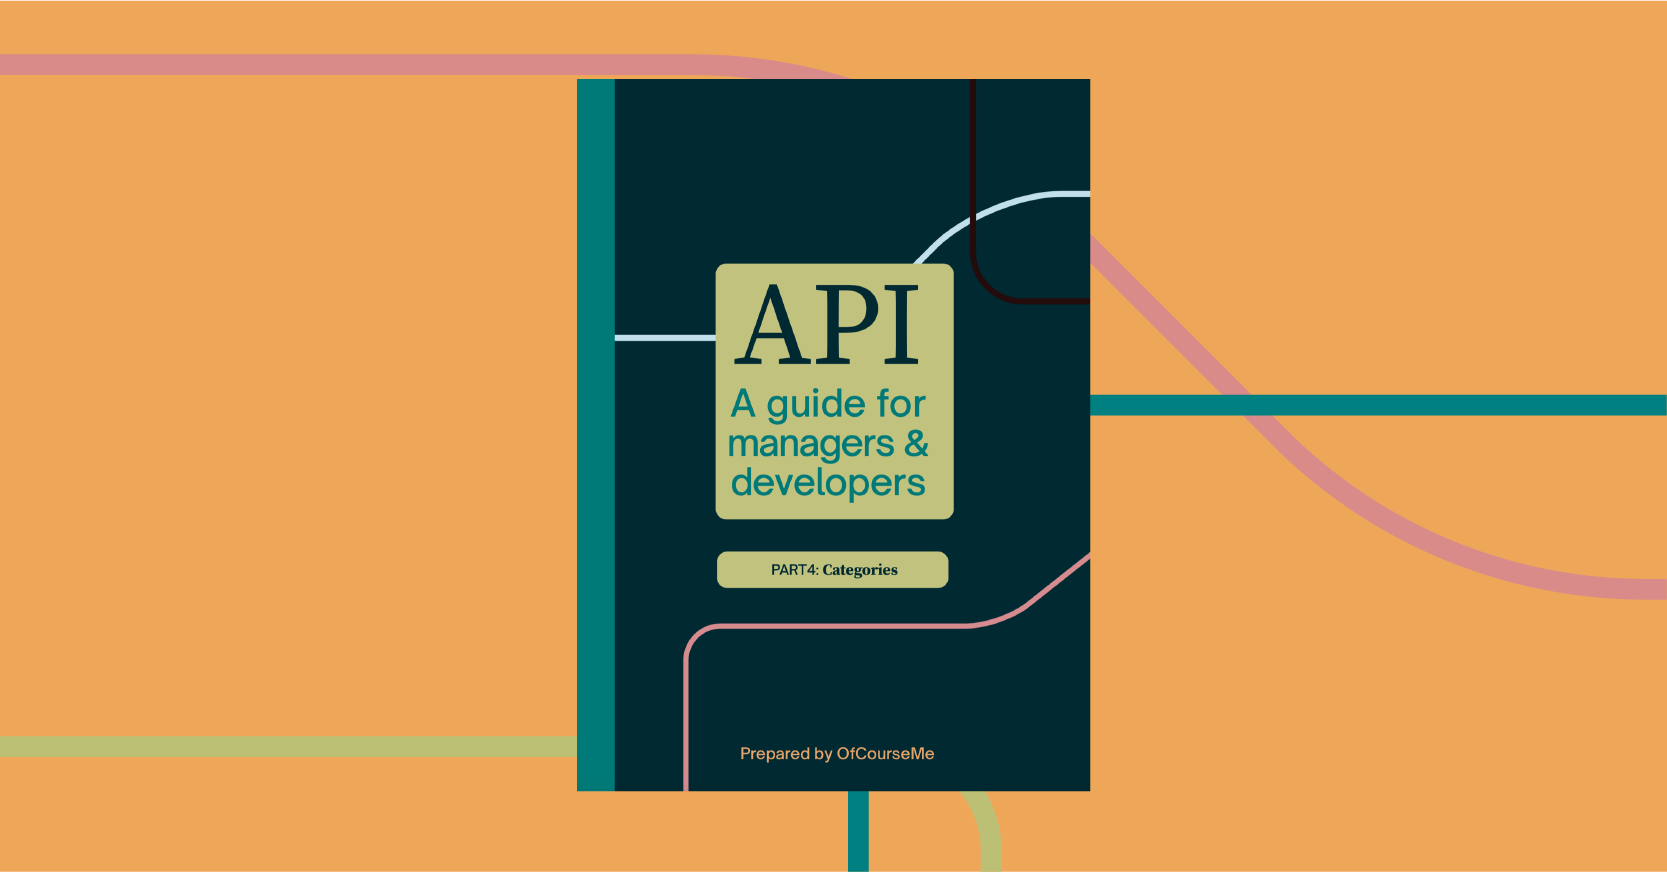 API: a guide for managers & developers part 4 – Categories